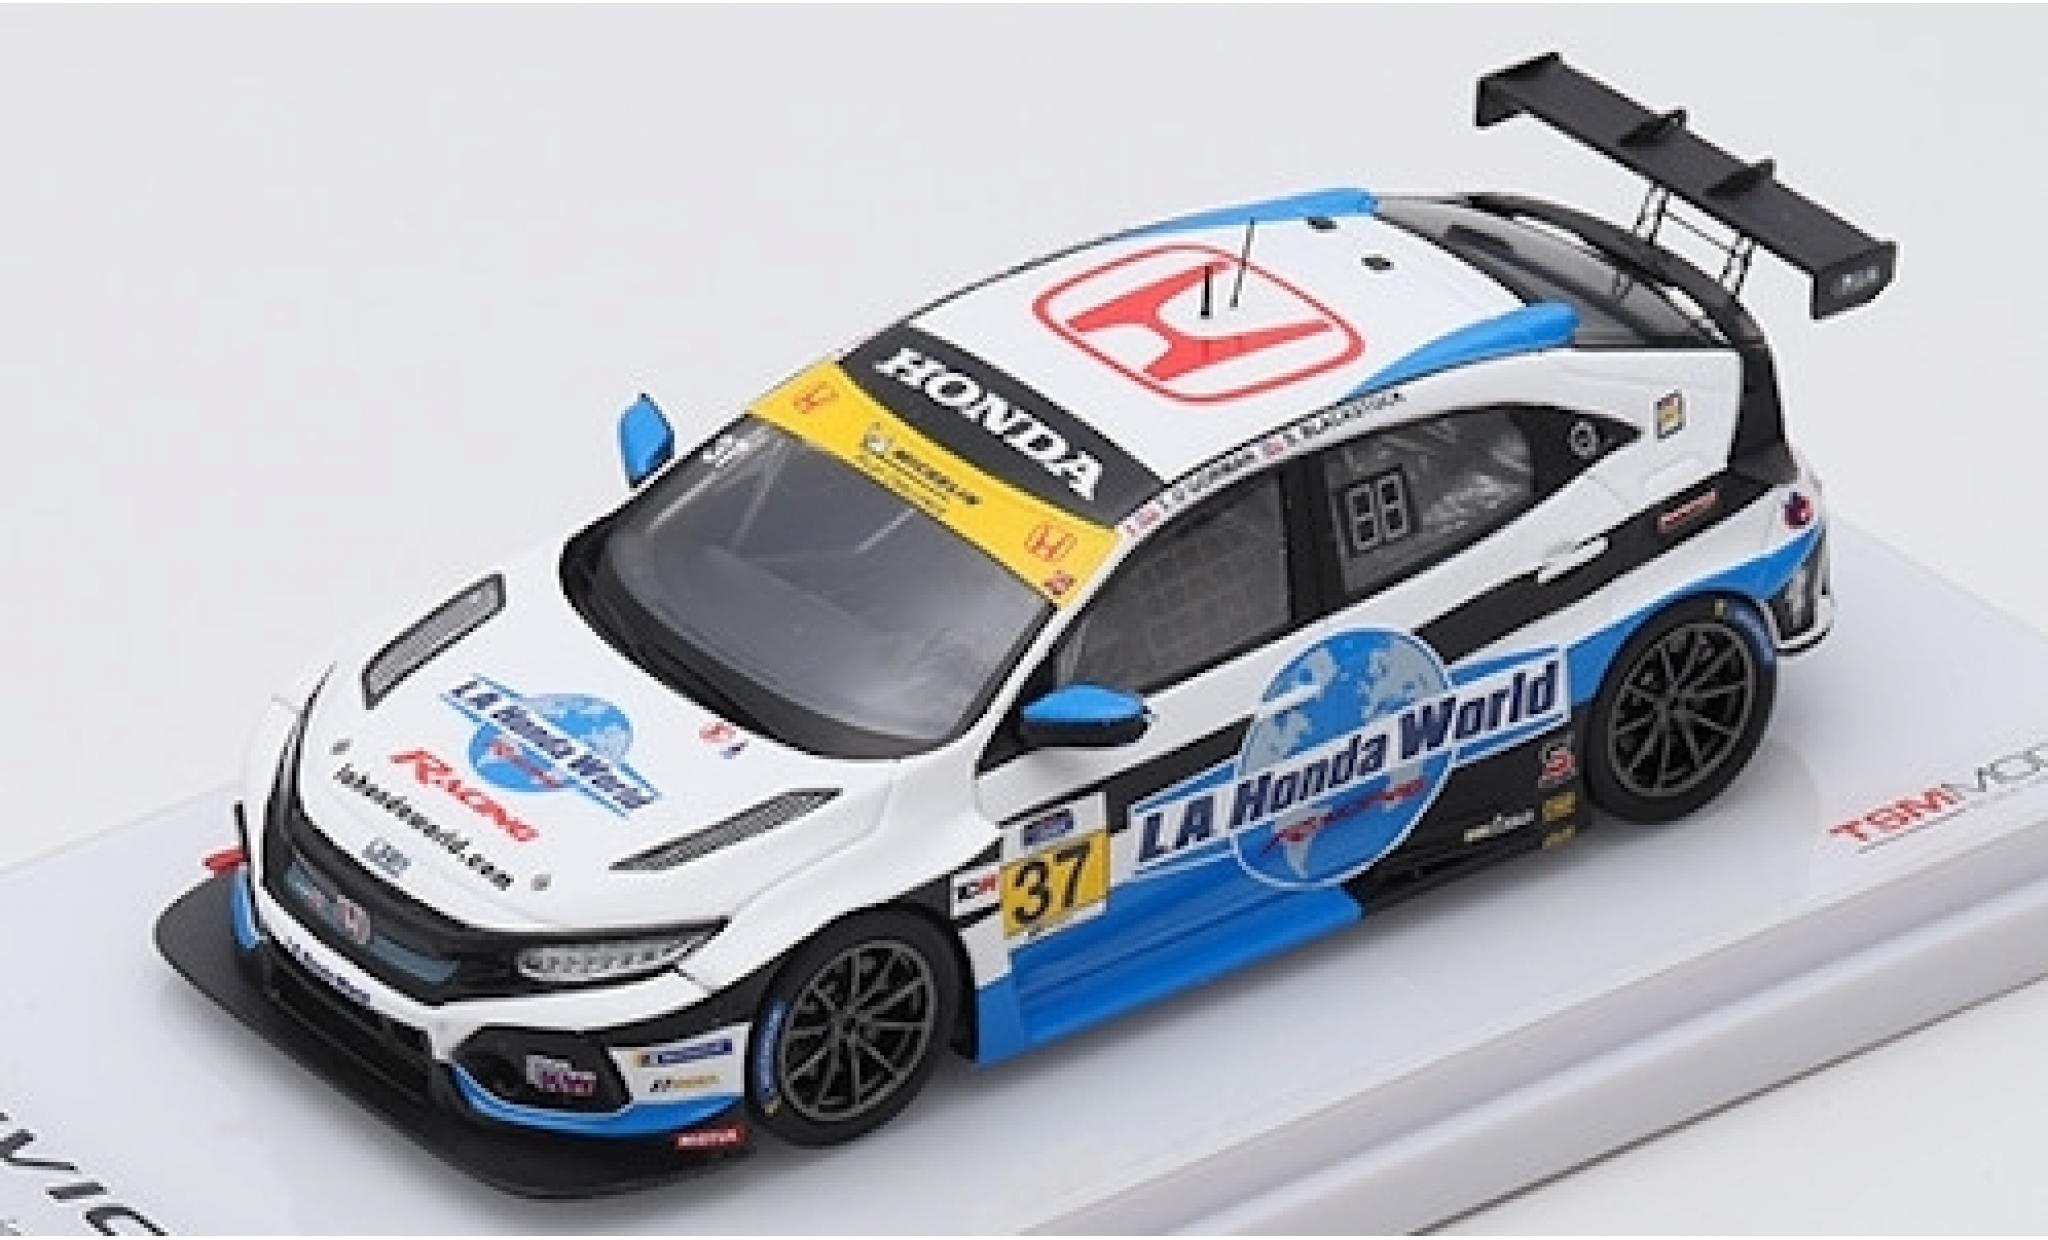 Honda Civic 1/43 TrueScale Miniatures Type R TCR No.37 LA World Racing 24h Daytona 2019 T.O Gorman/S.Blackstock